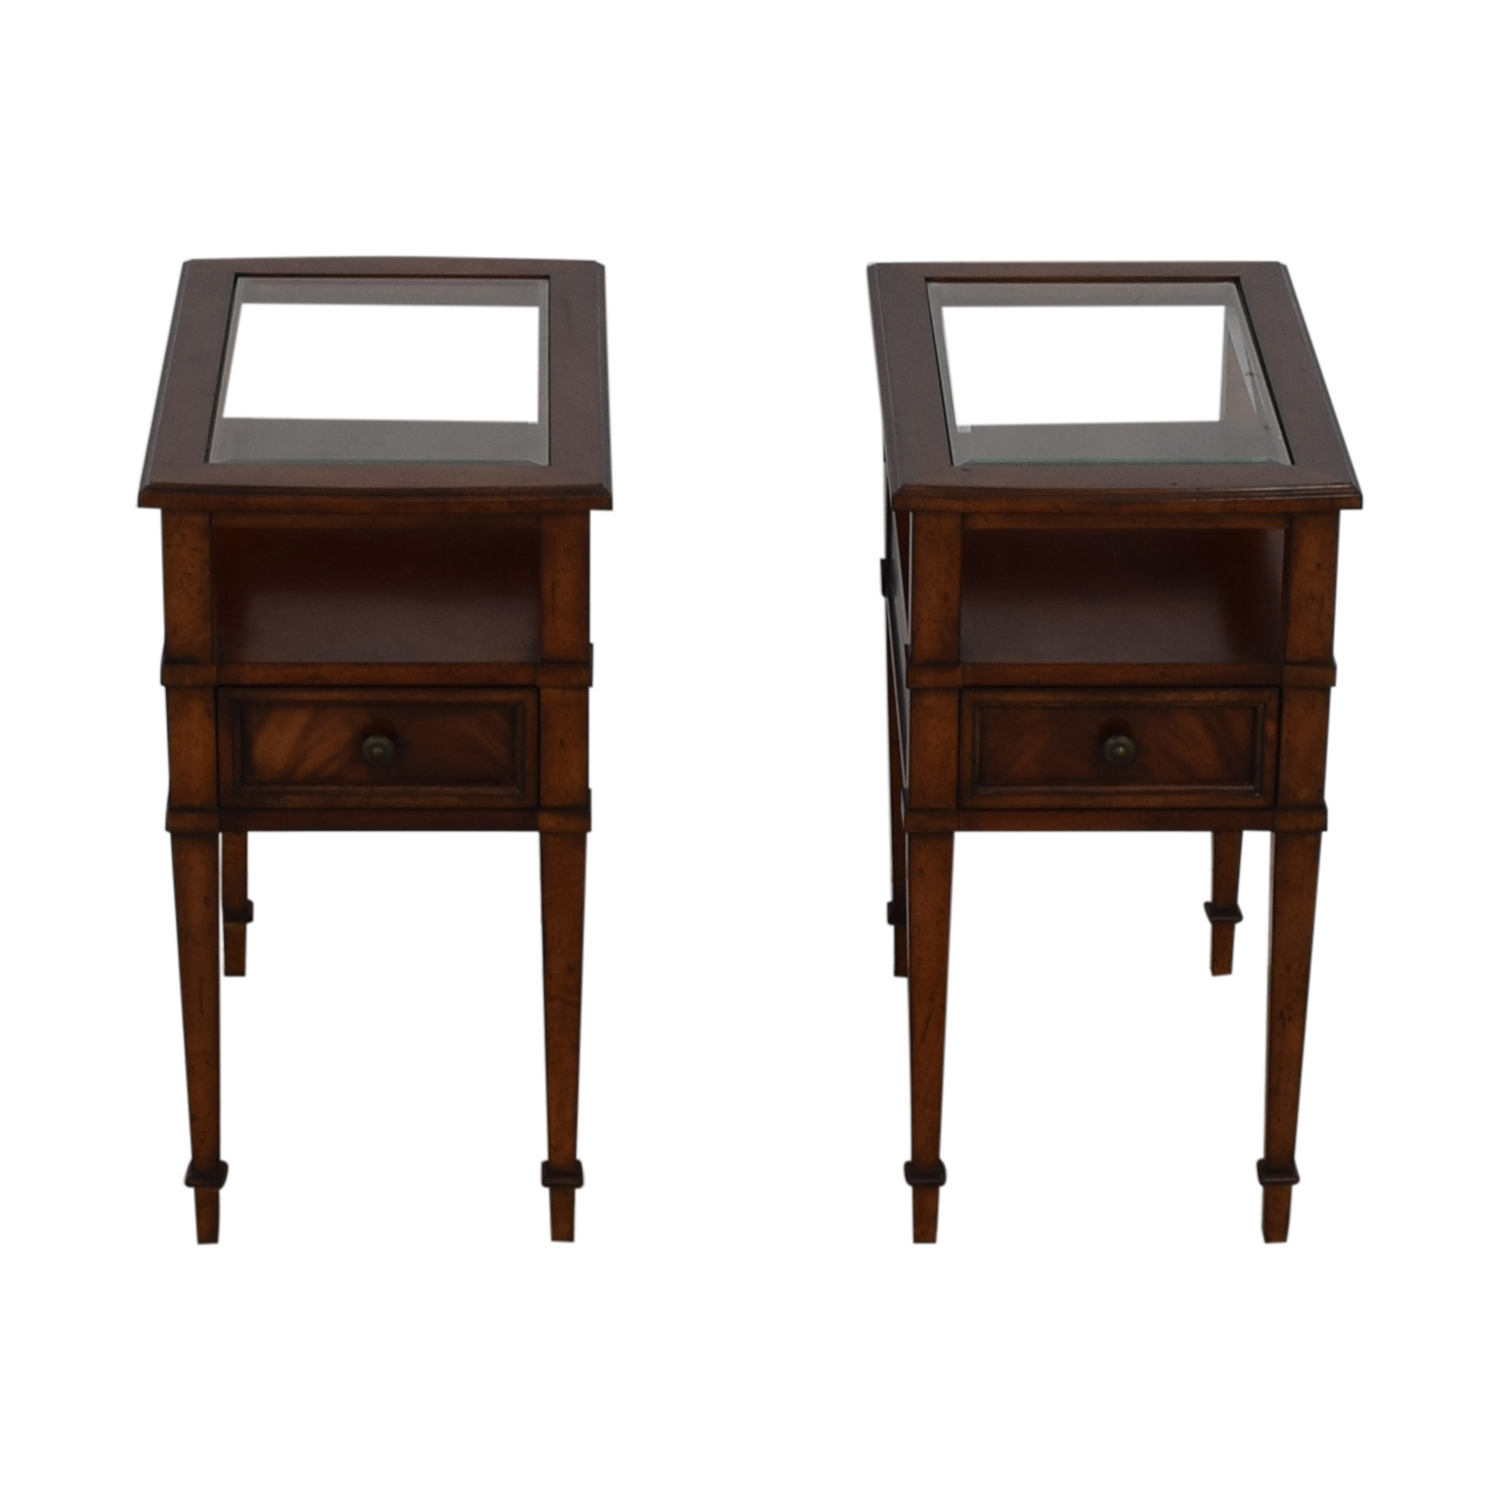 Drexel Heritage Single Drawer Glass and Wood Side Tables Drexel Heritage